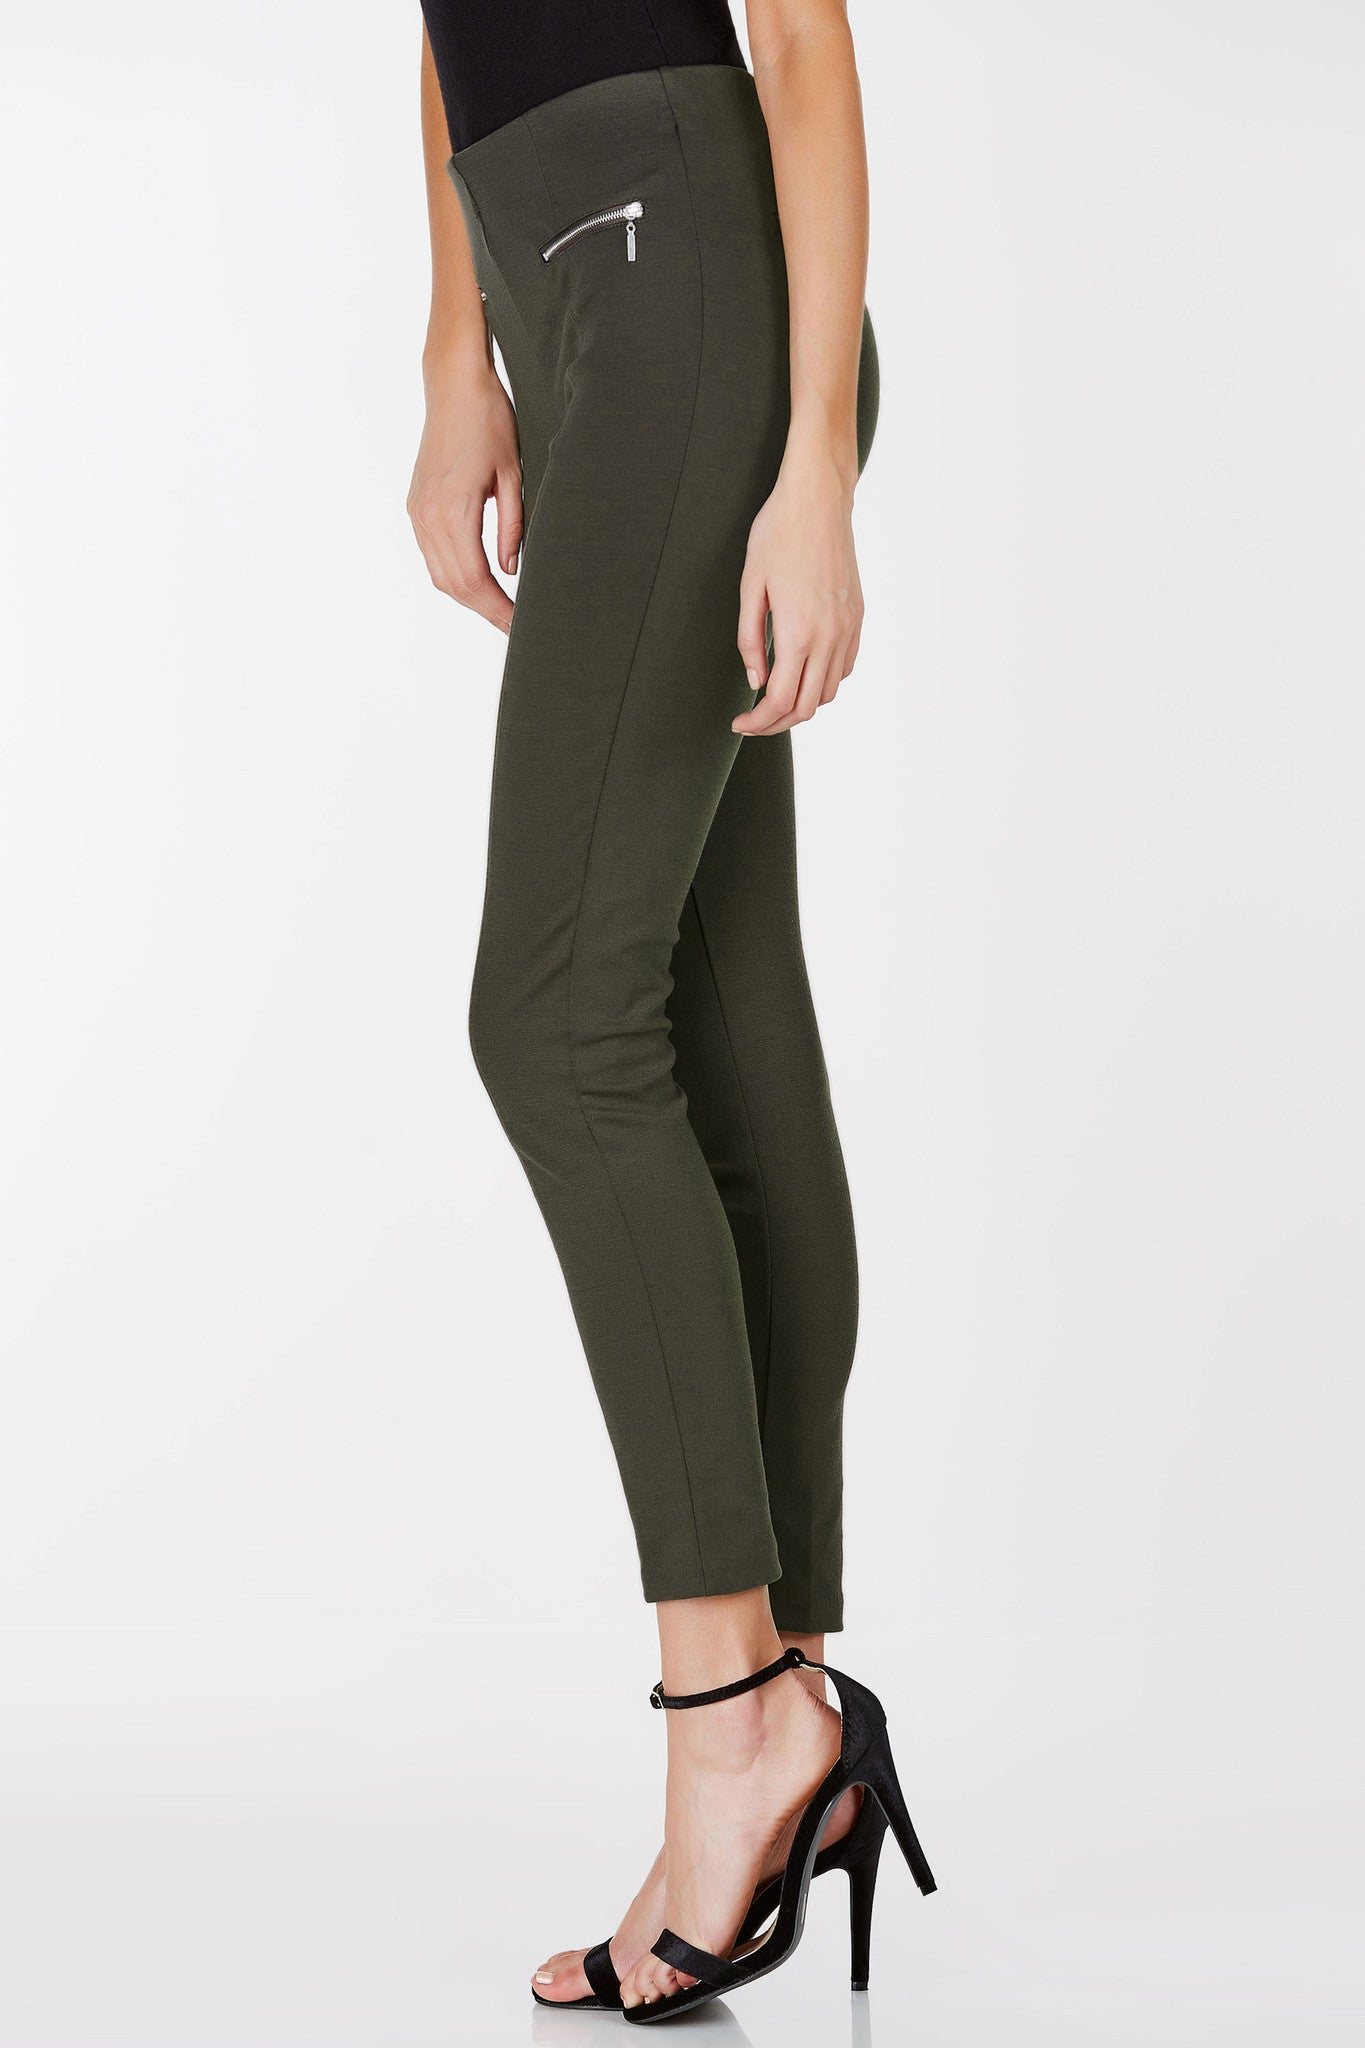 Mid rise pants with a skinny fit. Stretchy fabric and faux pocket detailing.